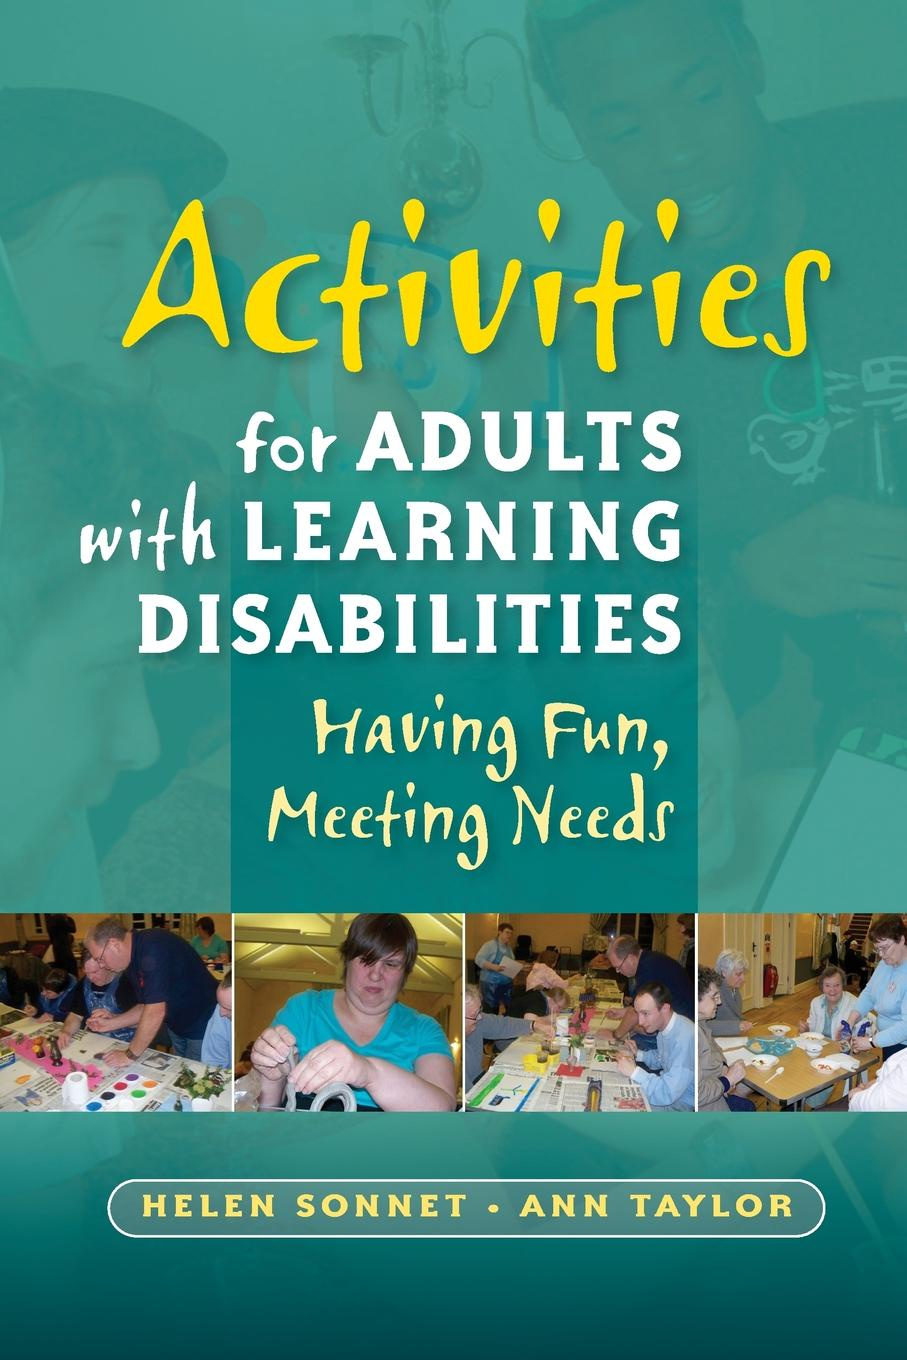 Helen Sonnet Activities for Adults with Learning Disabilities. Having Fun, Meeting Needs